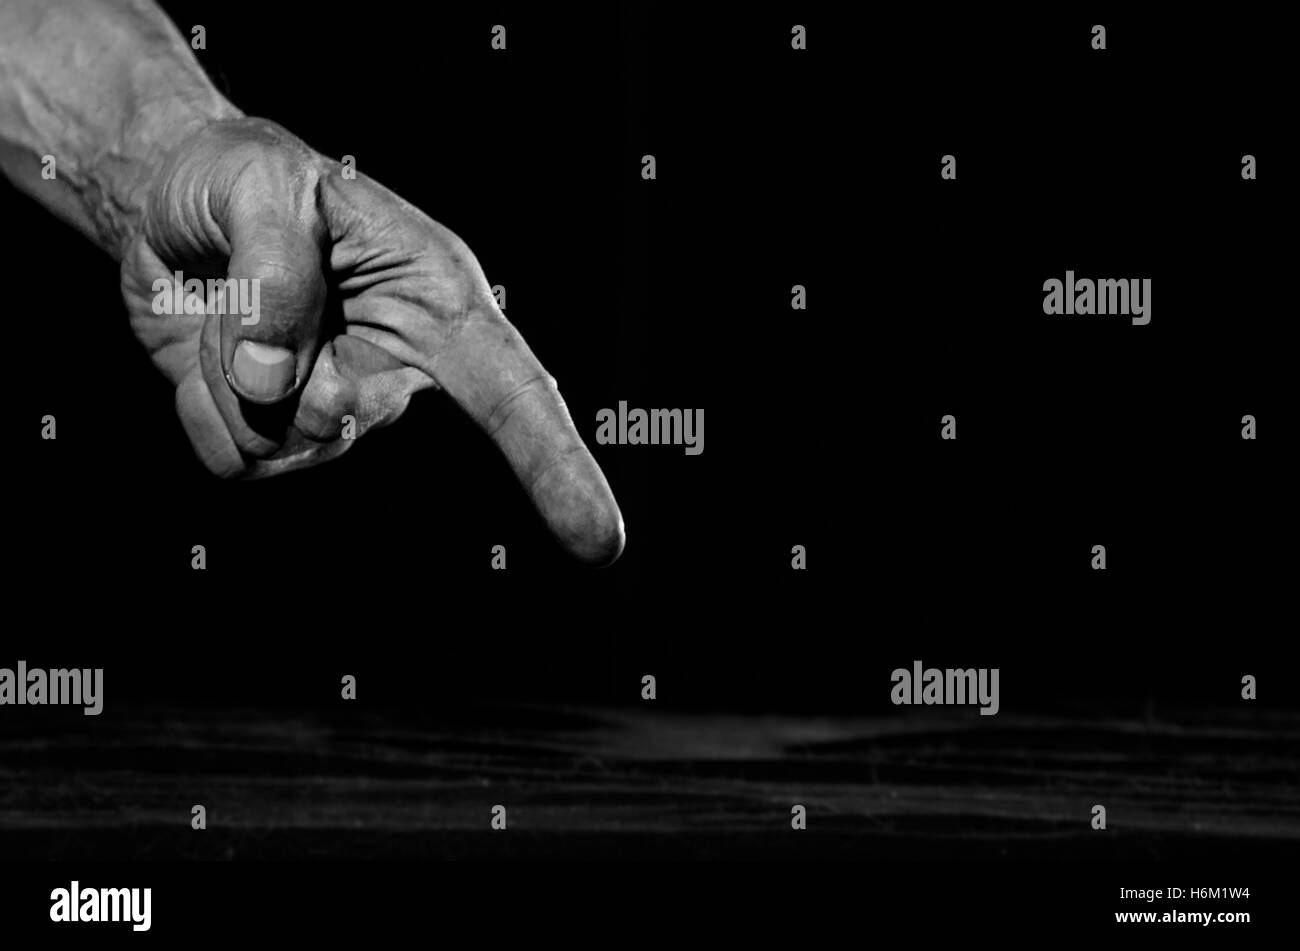 Dirty hand pointing a finger at something. - Stock Image